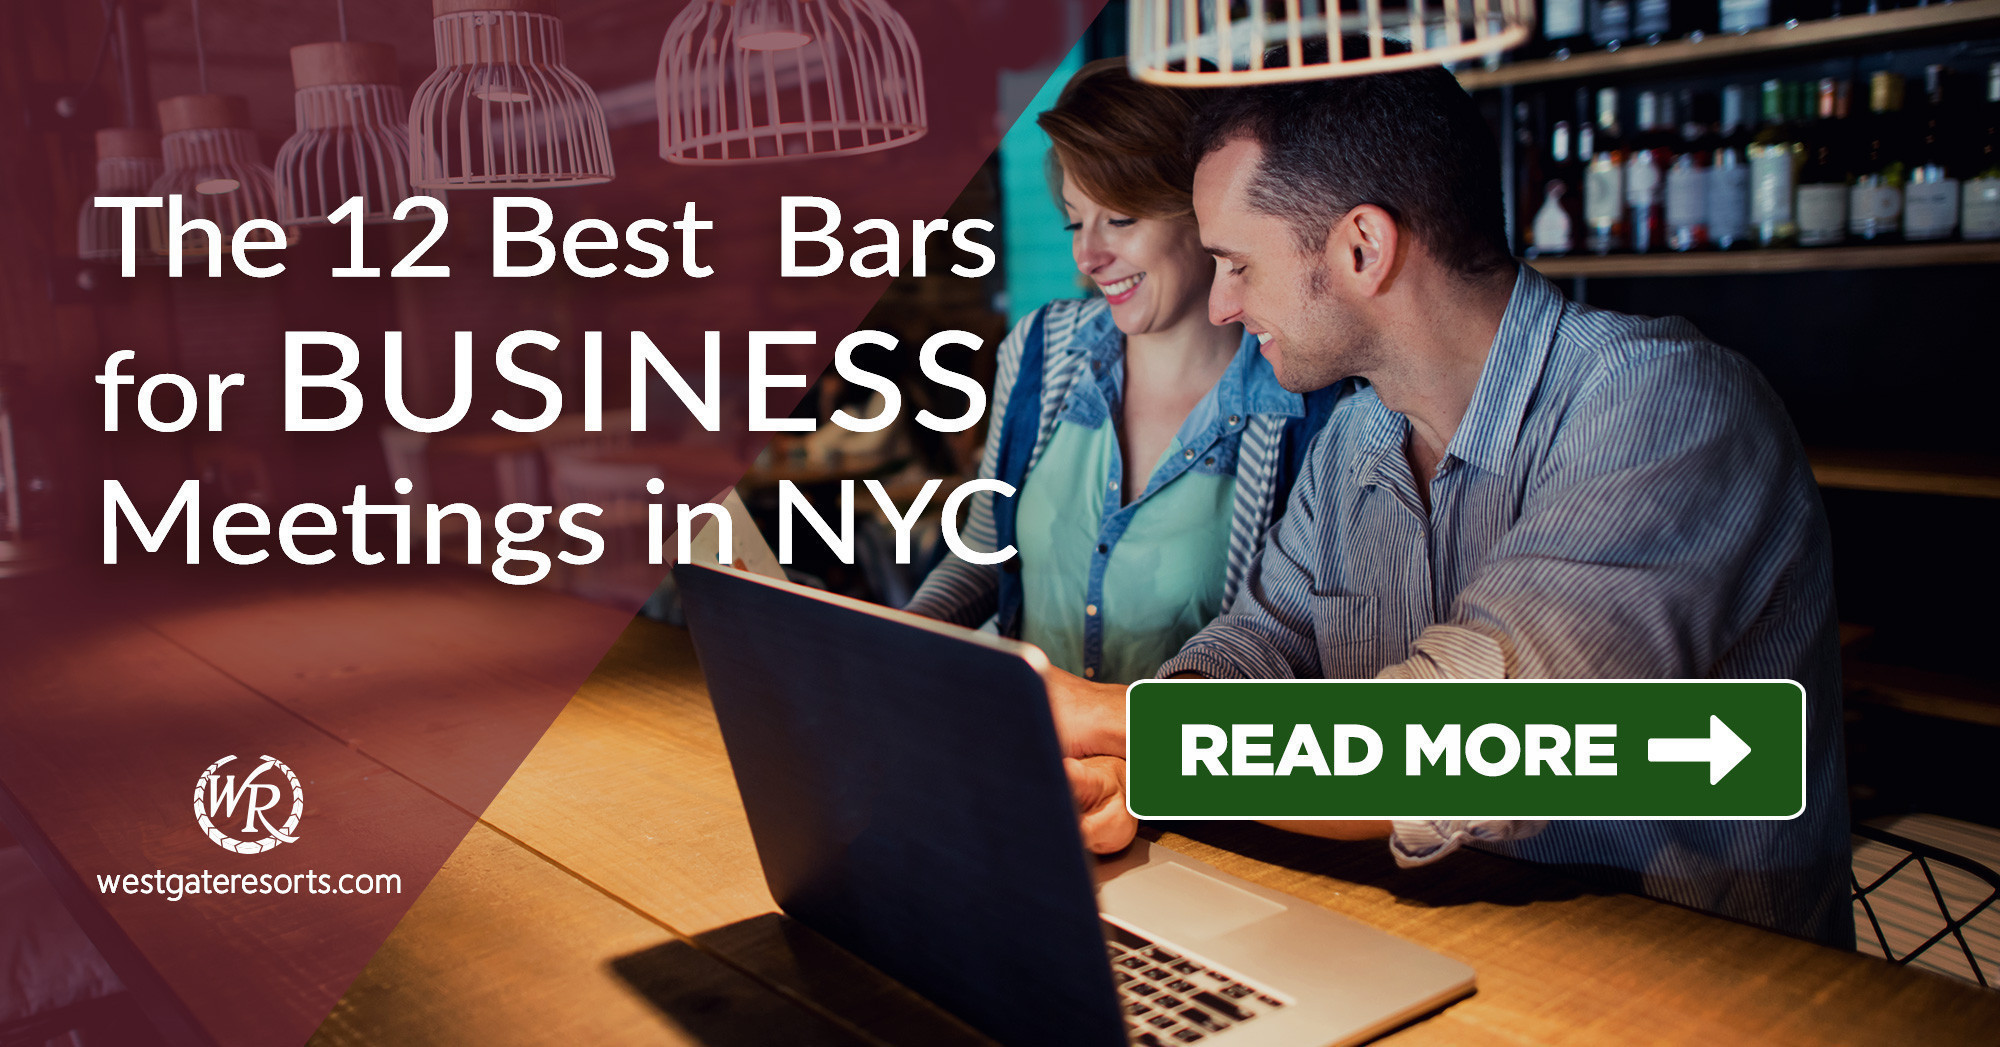 The 12 Best Bars for Business Meetings in NYC